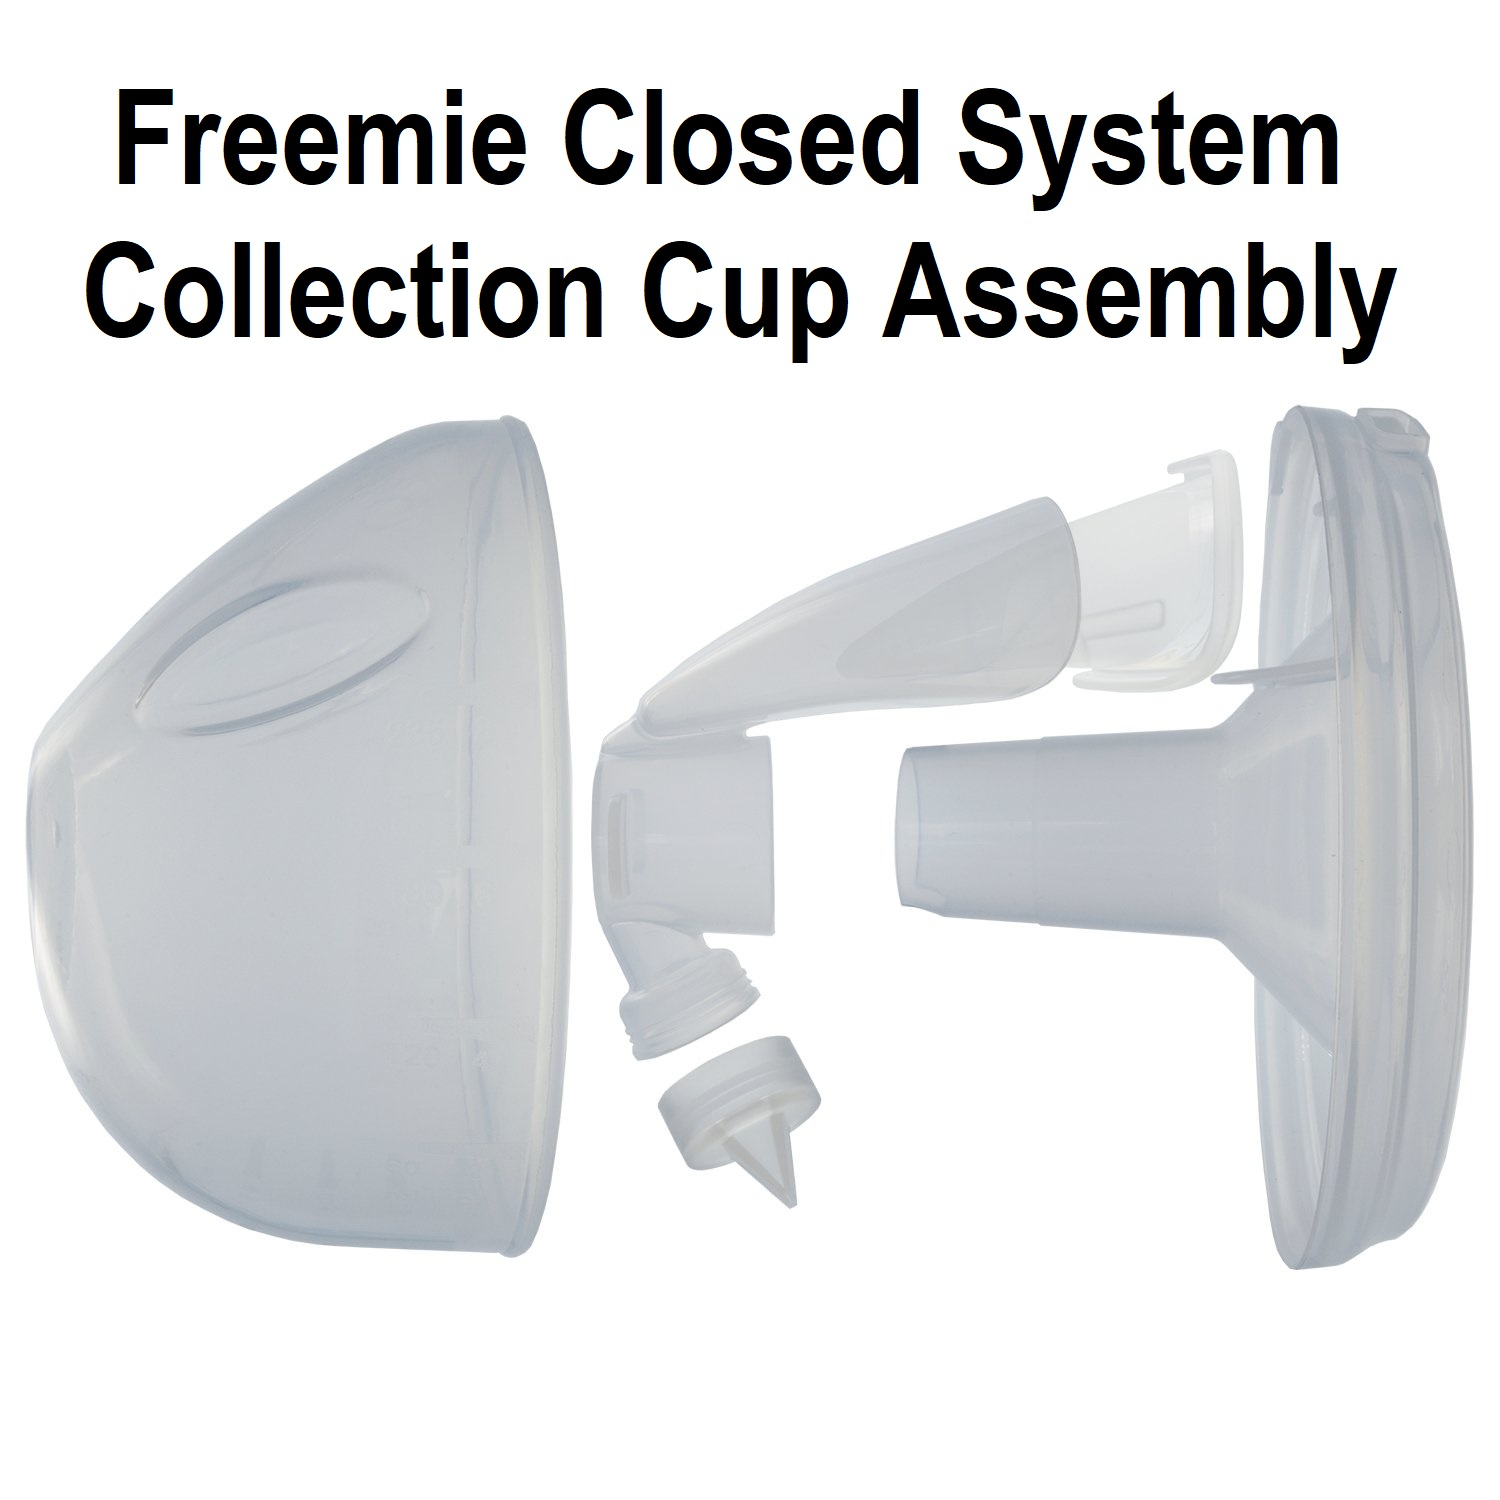 freemie-closed-system-exploded-labeled